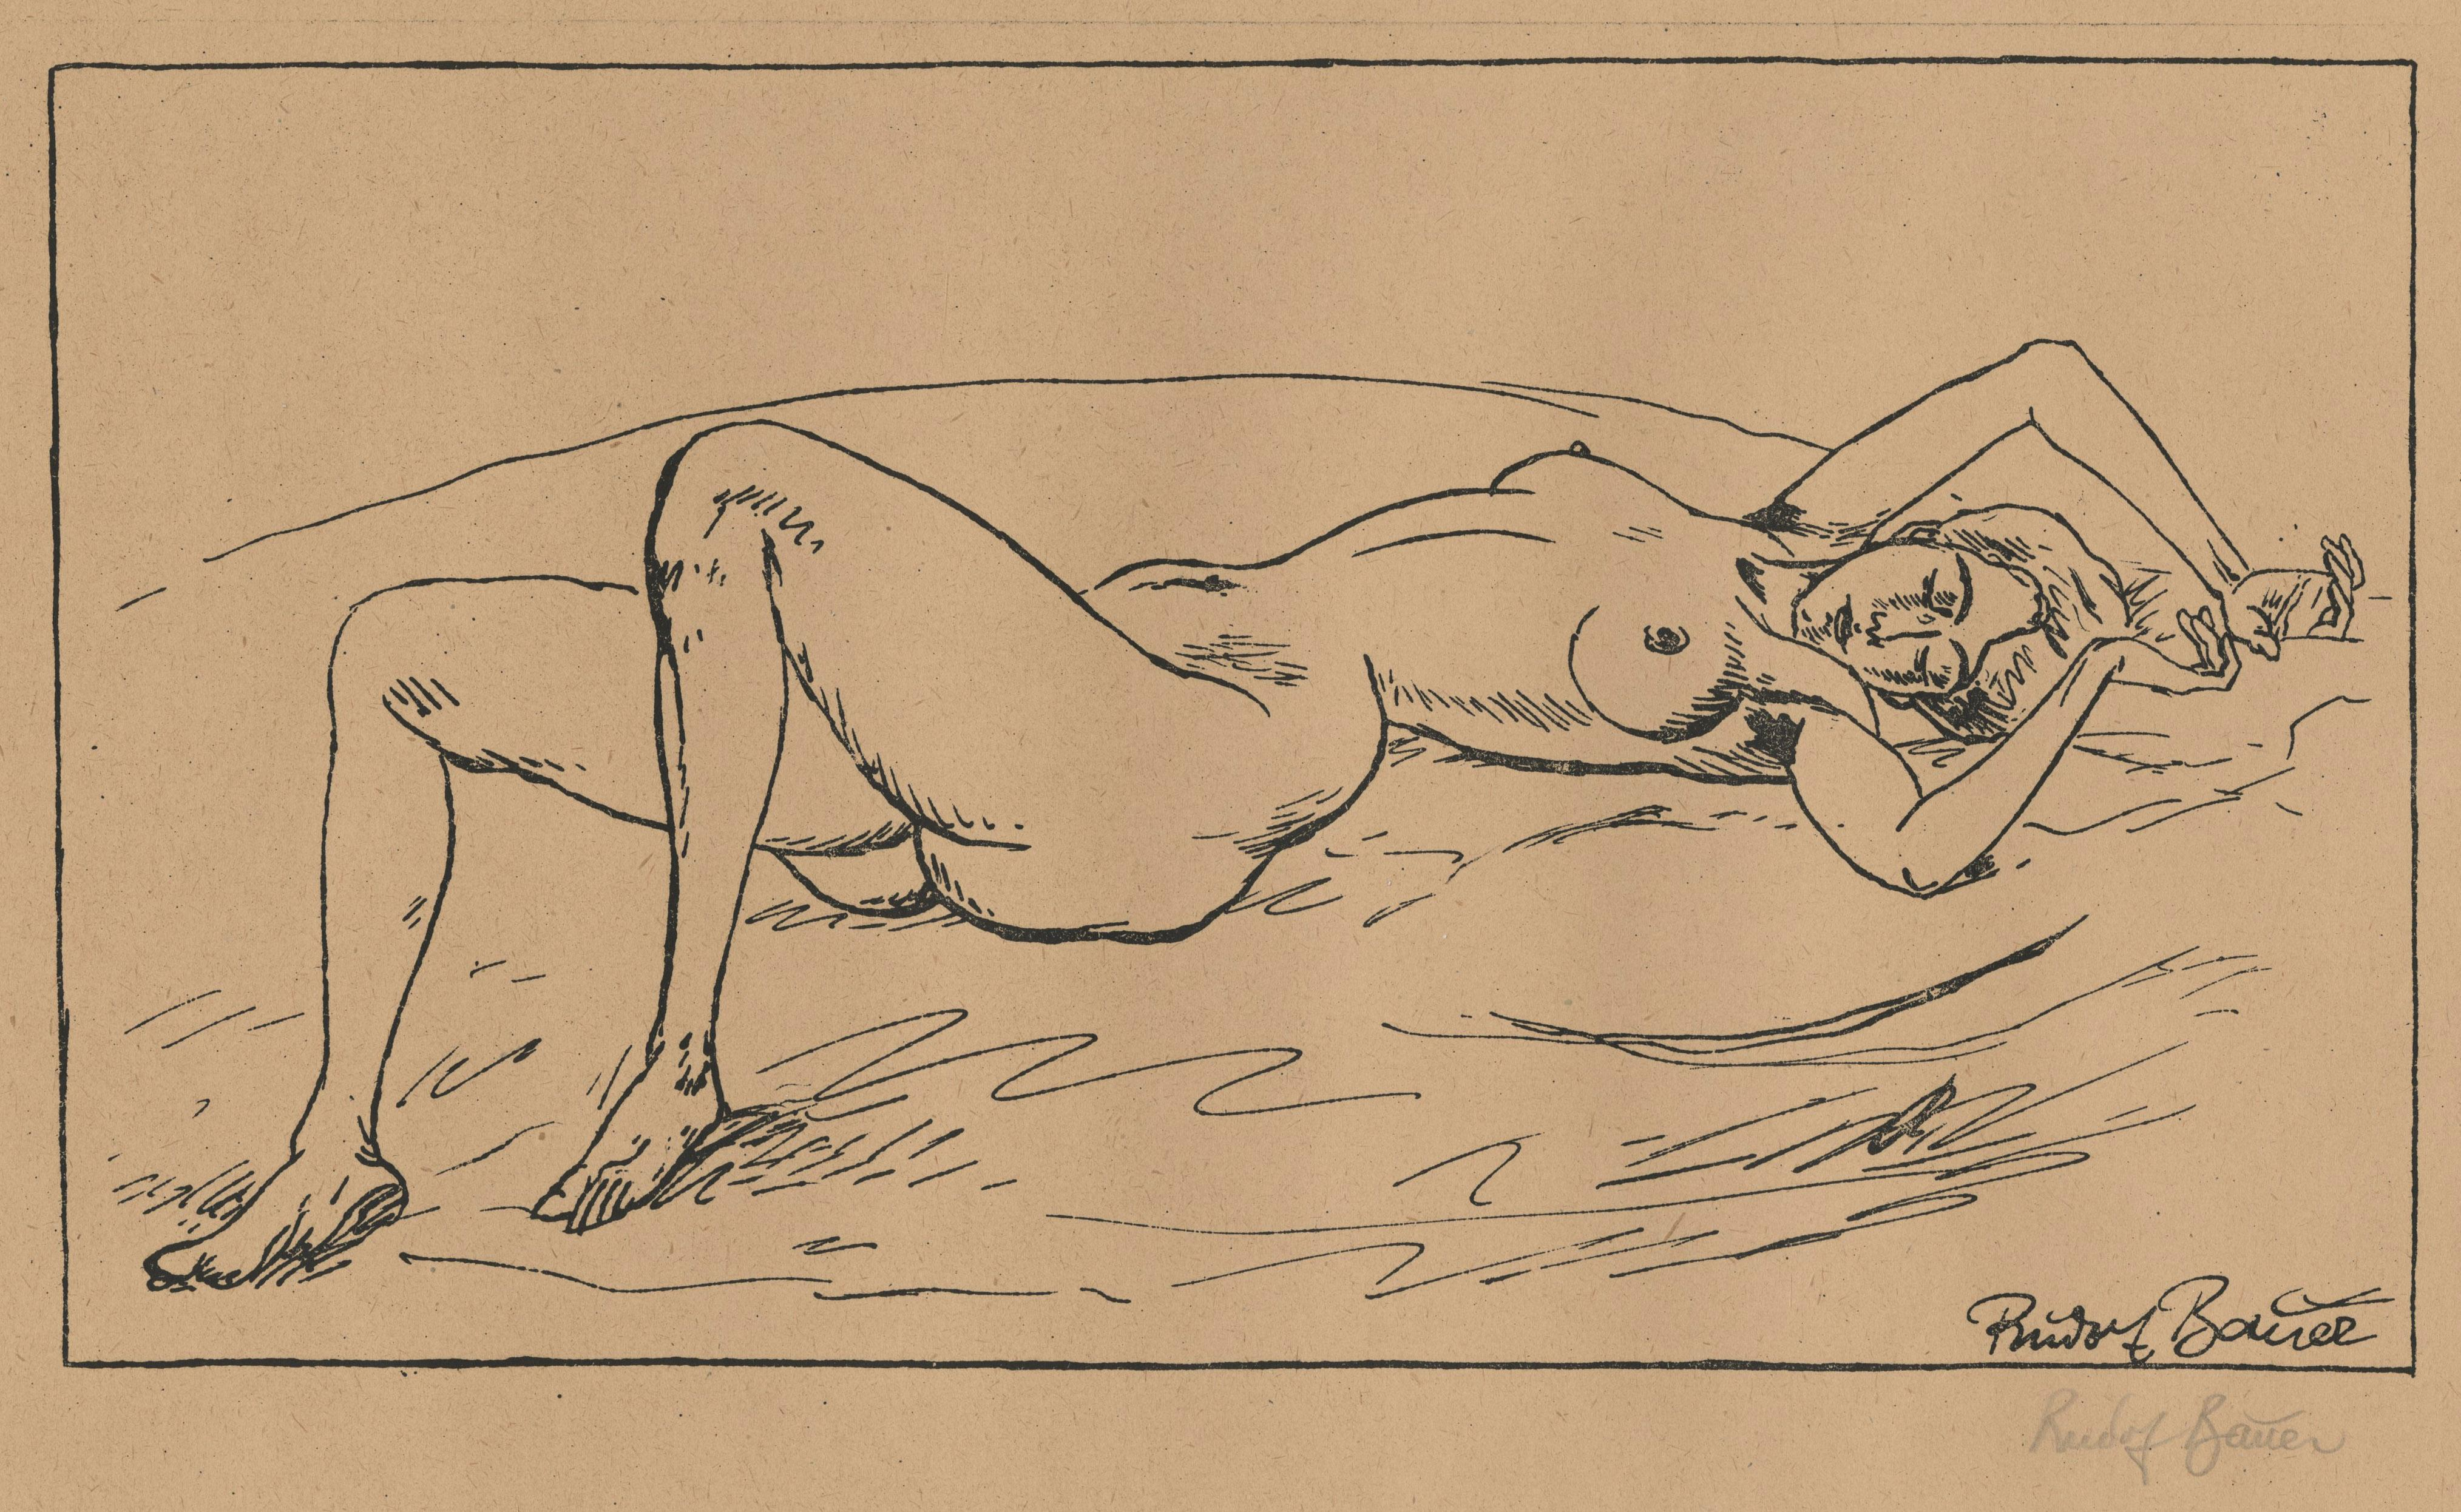 Reclining Nude on Bed